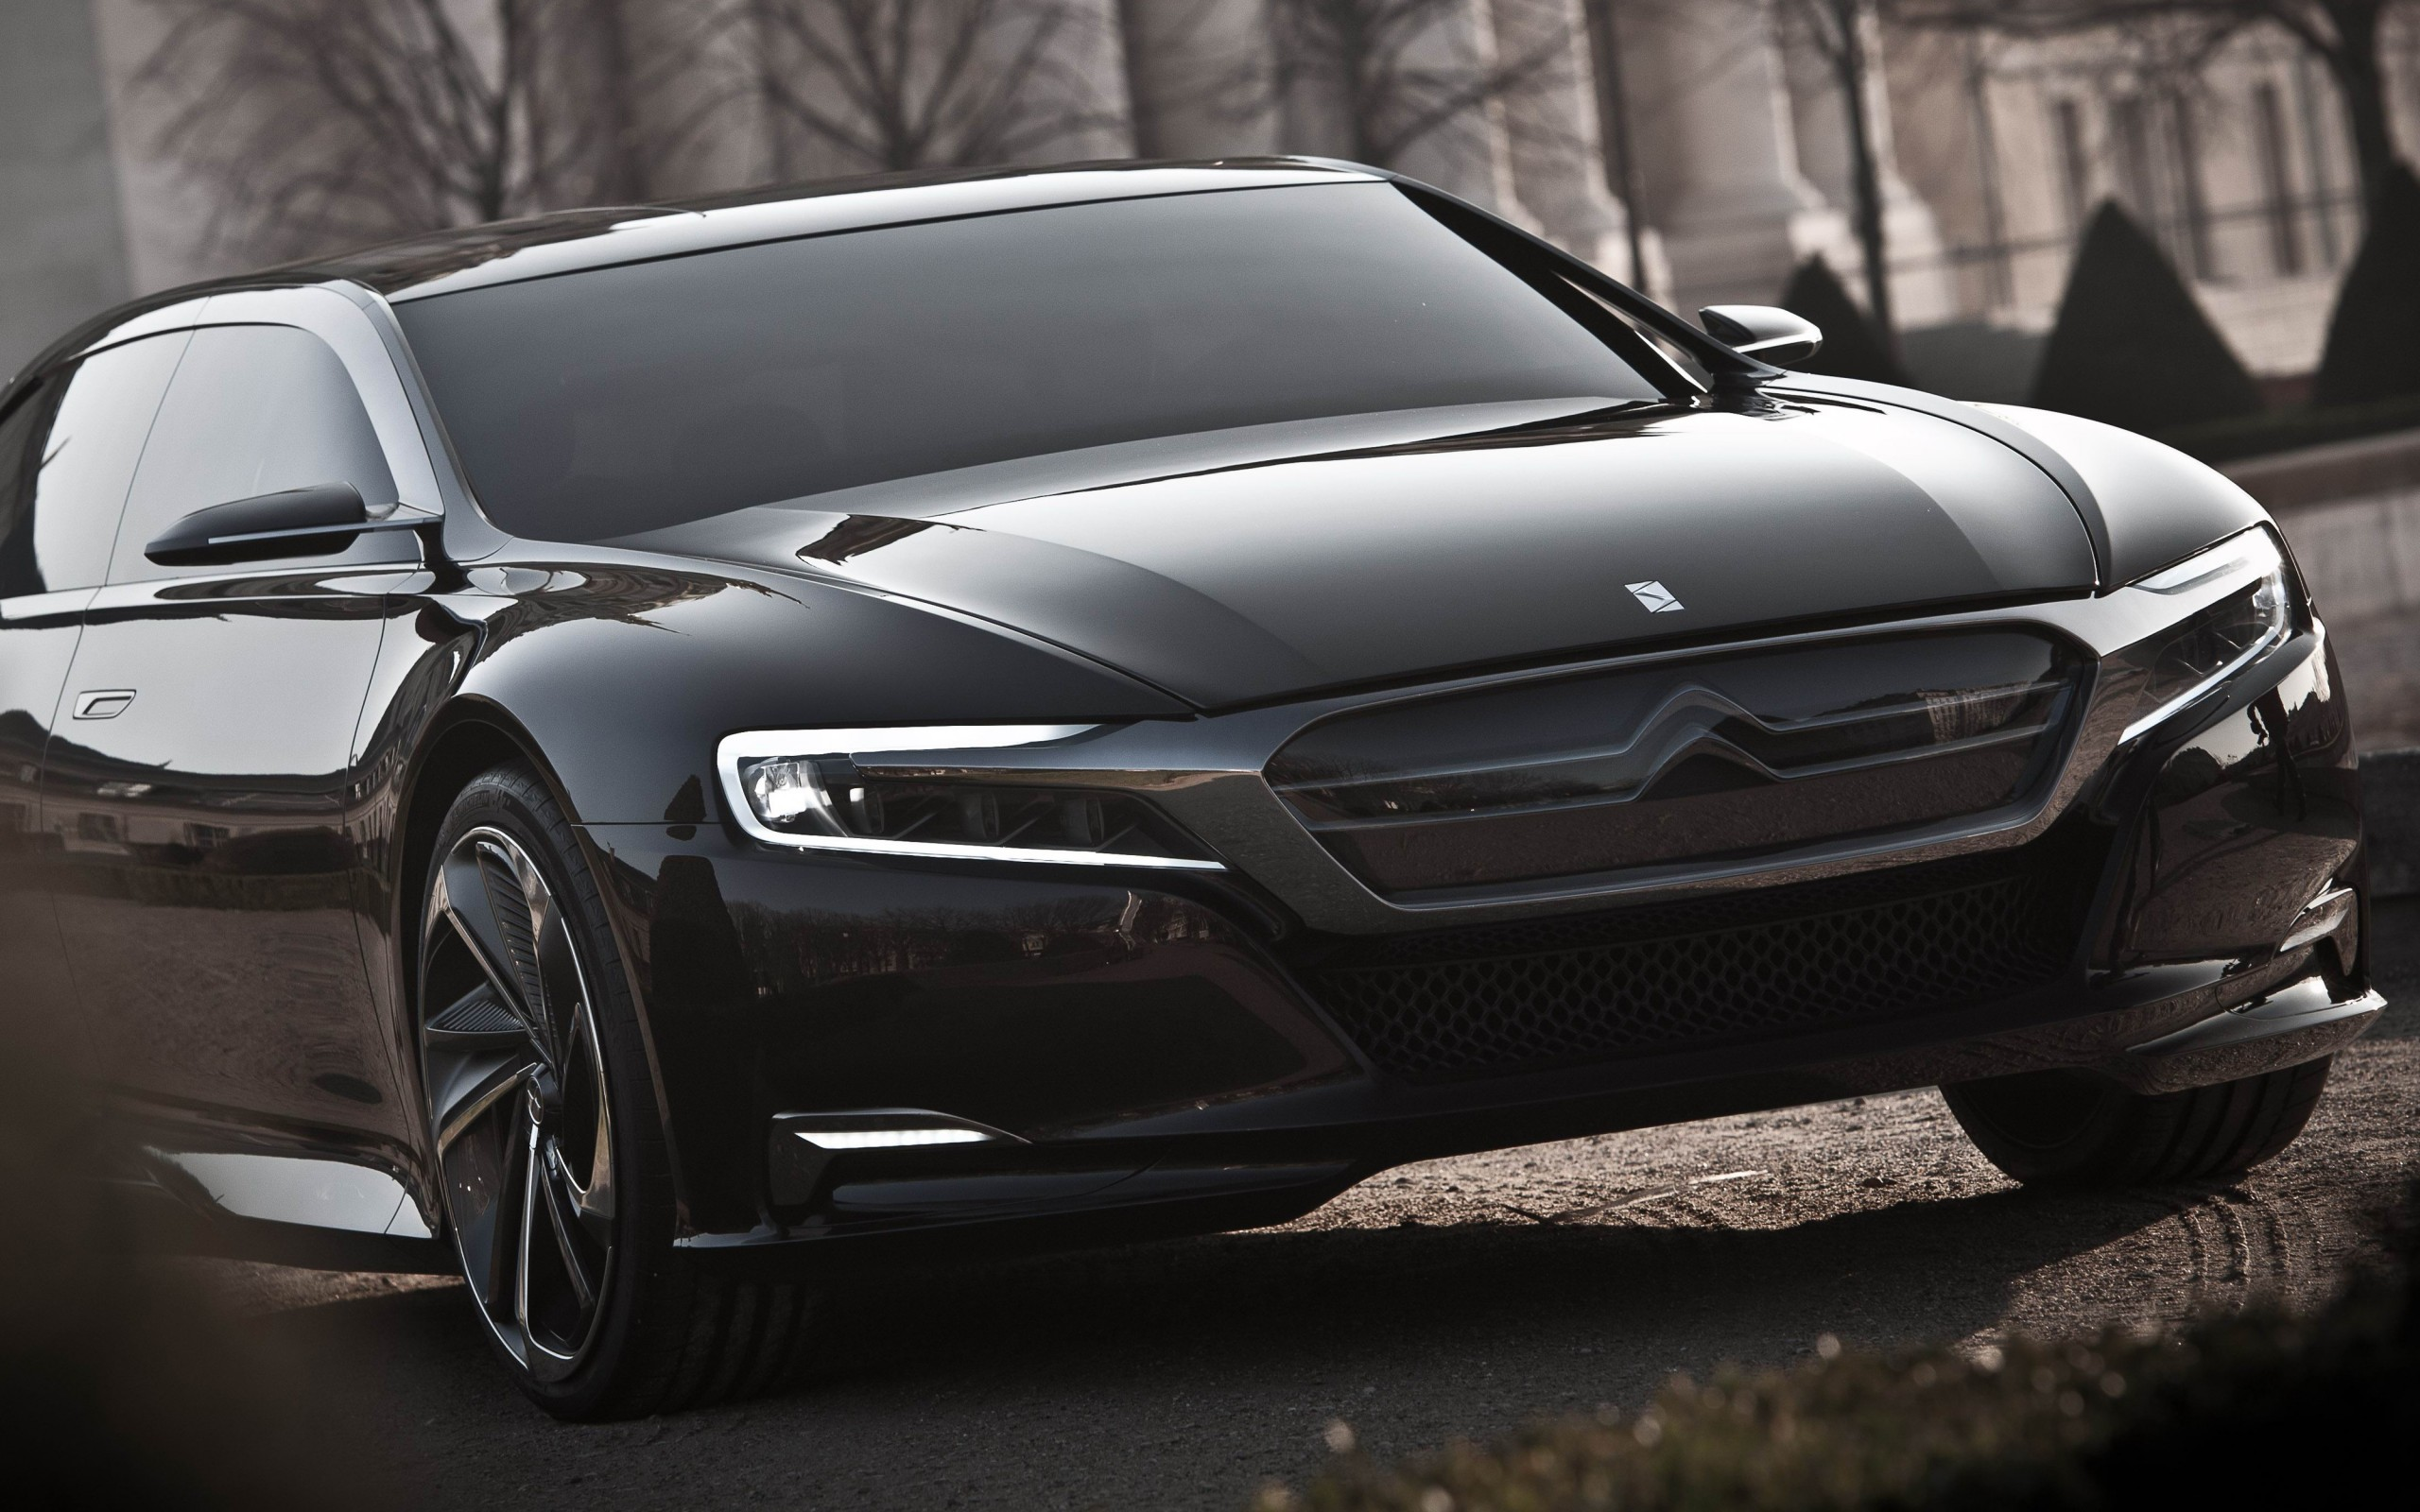 2012 citroen numero 9 concept 2 wallpaper hd car. Black Bedroom Furniture Sets. Home Design Ideas